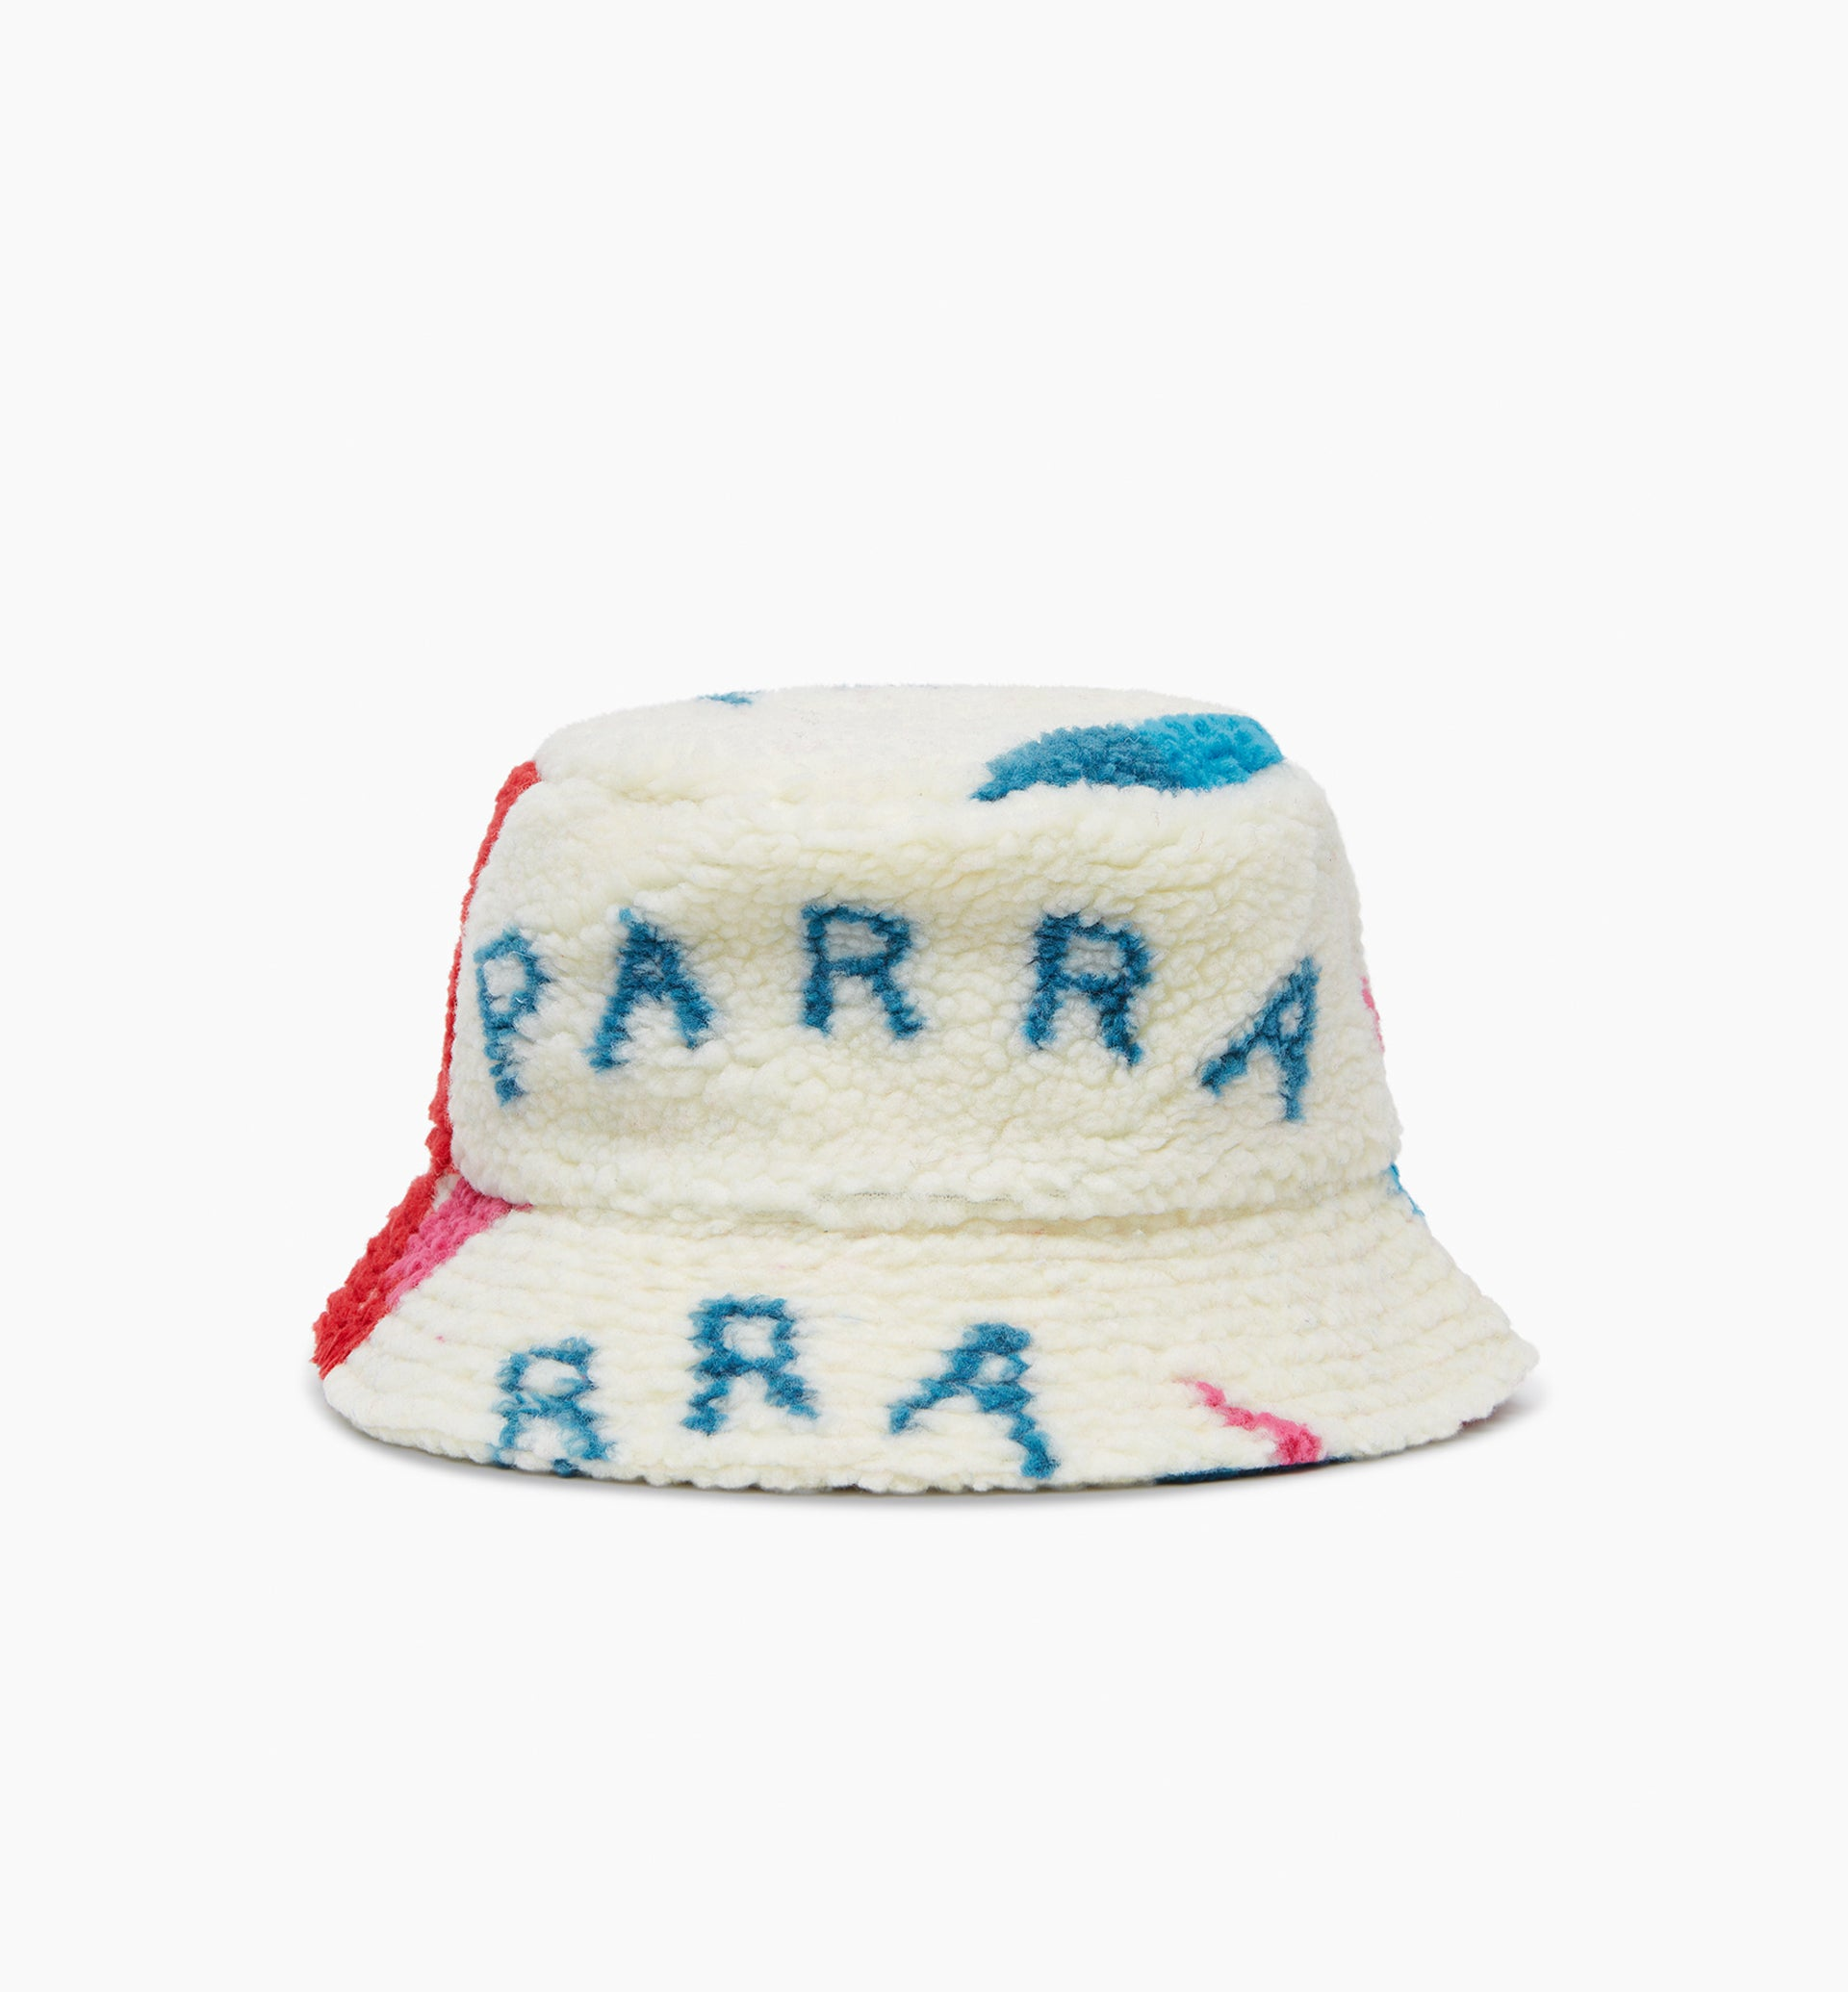 Parra - sherpa fleece bucket hat